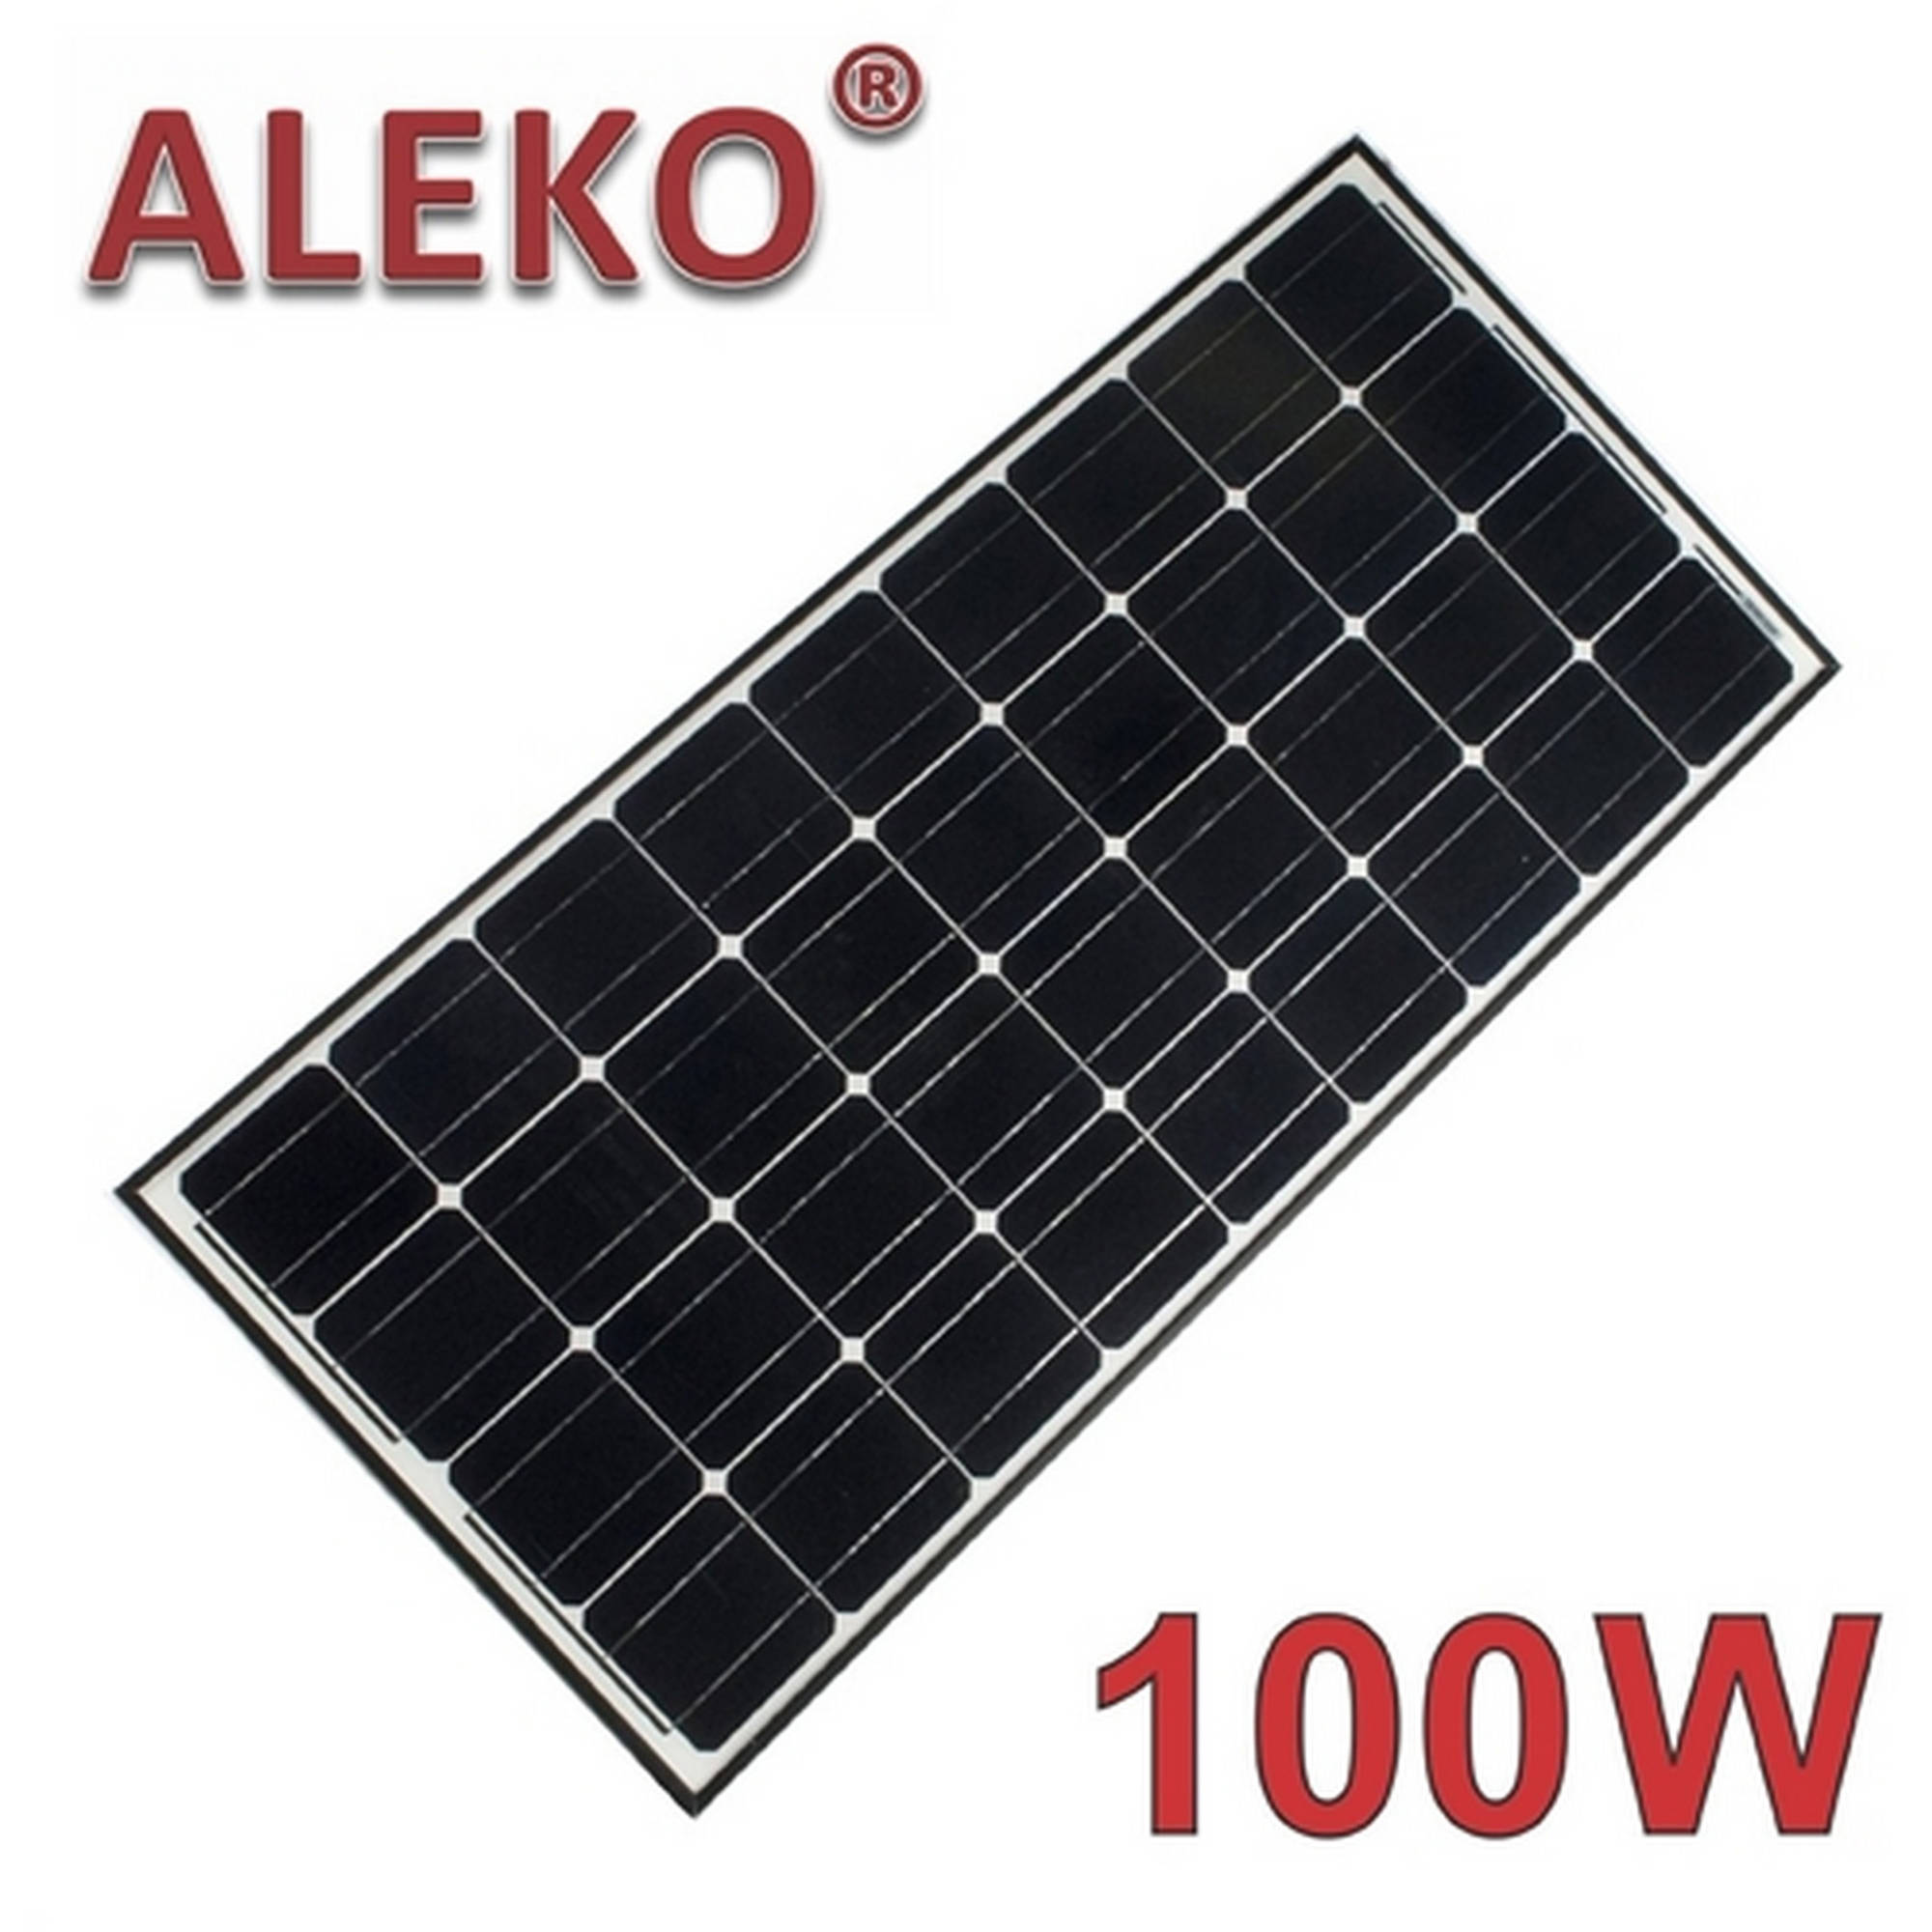 ALEKO Solar Panel Monocrystalline 100W for any DC 12V Application (gate opener, portable charging system, etc.)